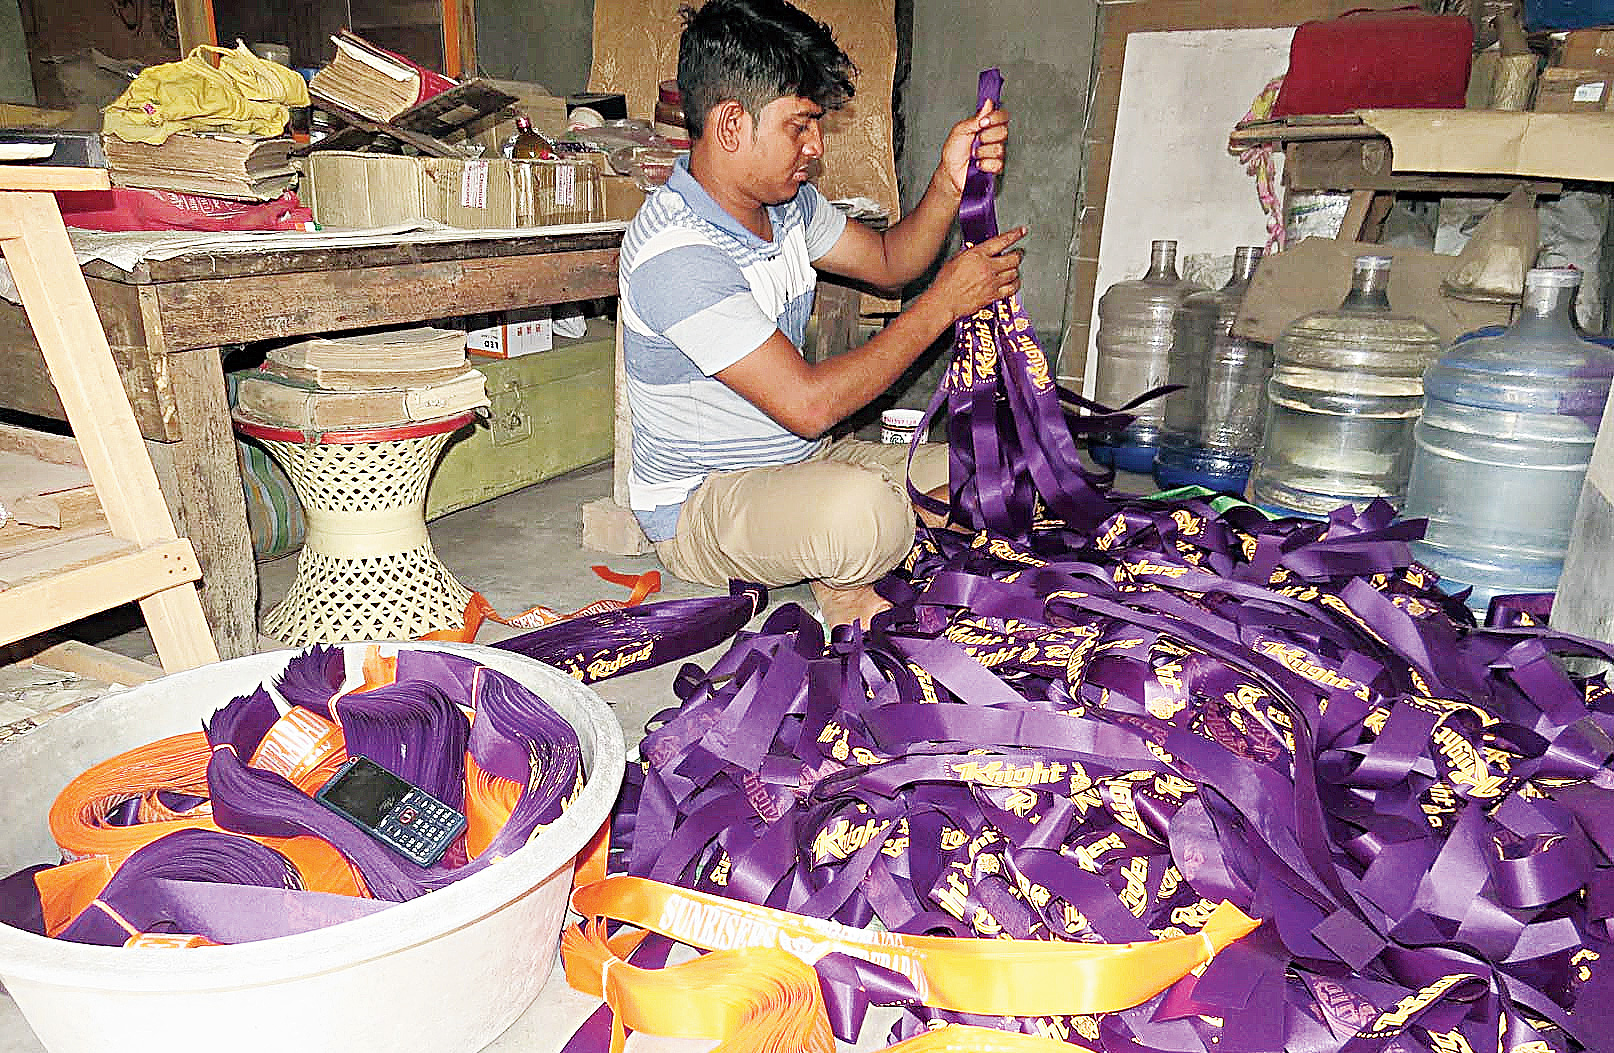 Manab Adhikari, who sells both in wholesale and retail, at work amid a pile of dyed purple headbands.